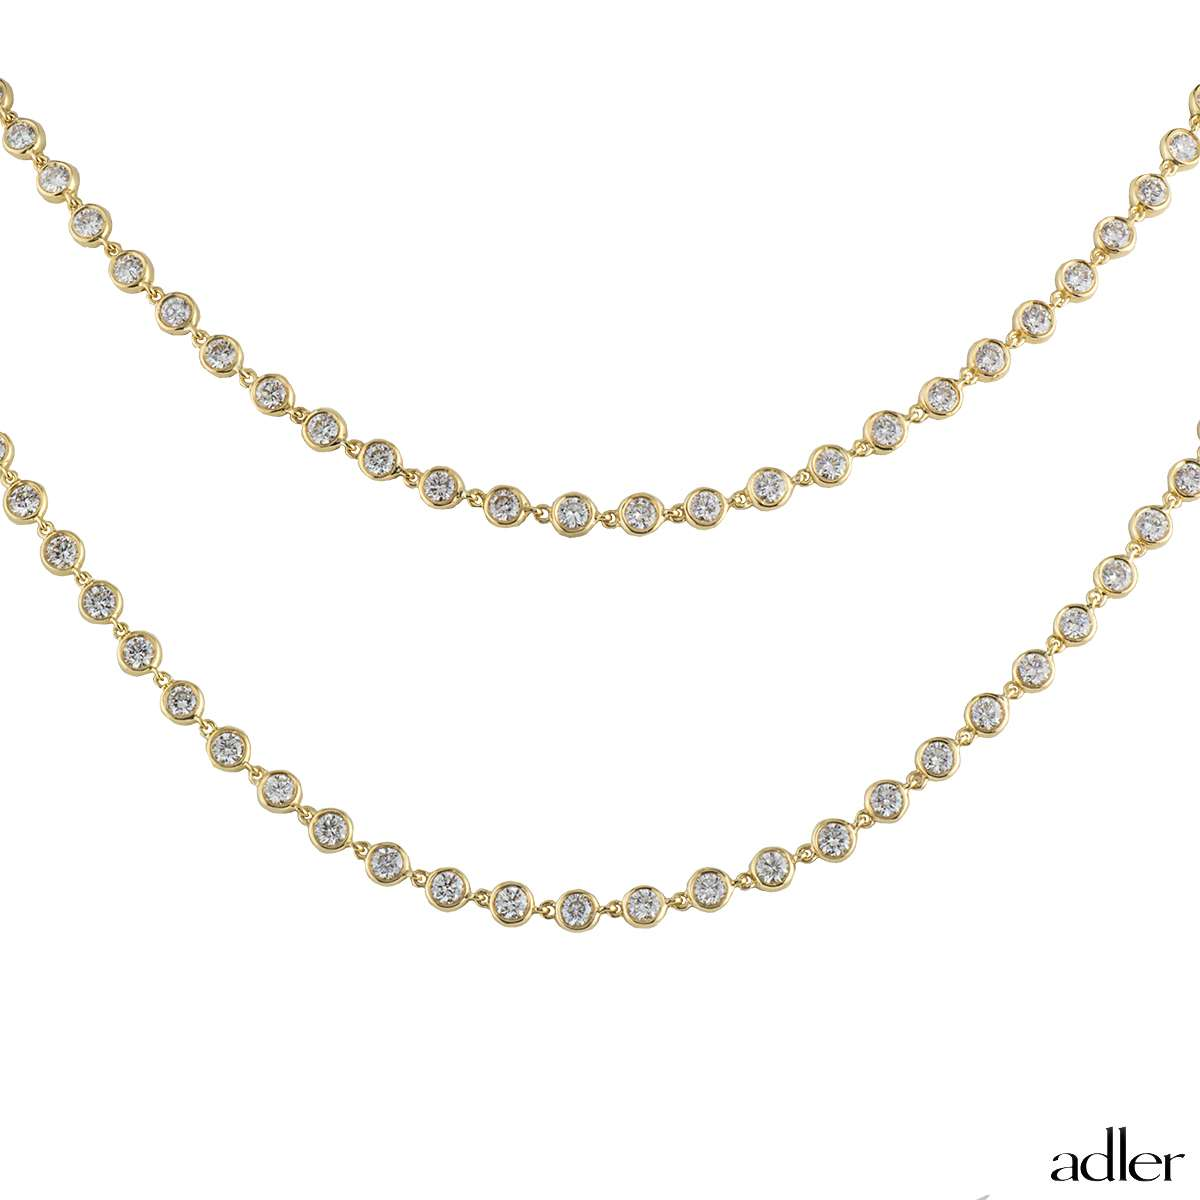 Adler 18k Yellow Gold Diamond Line Necklace 17.20ct